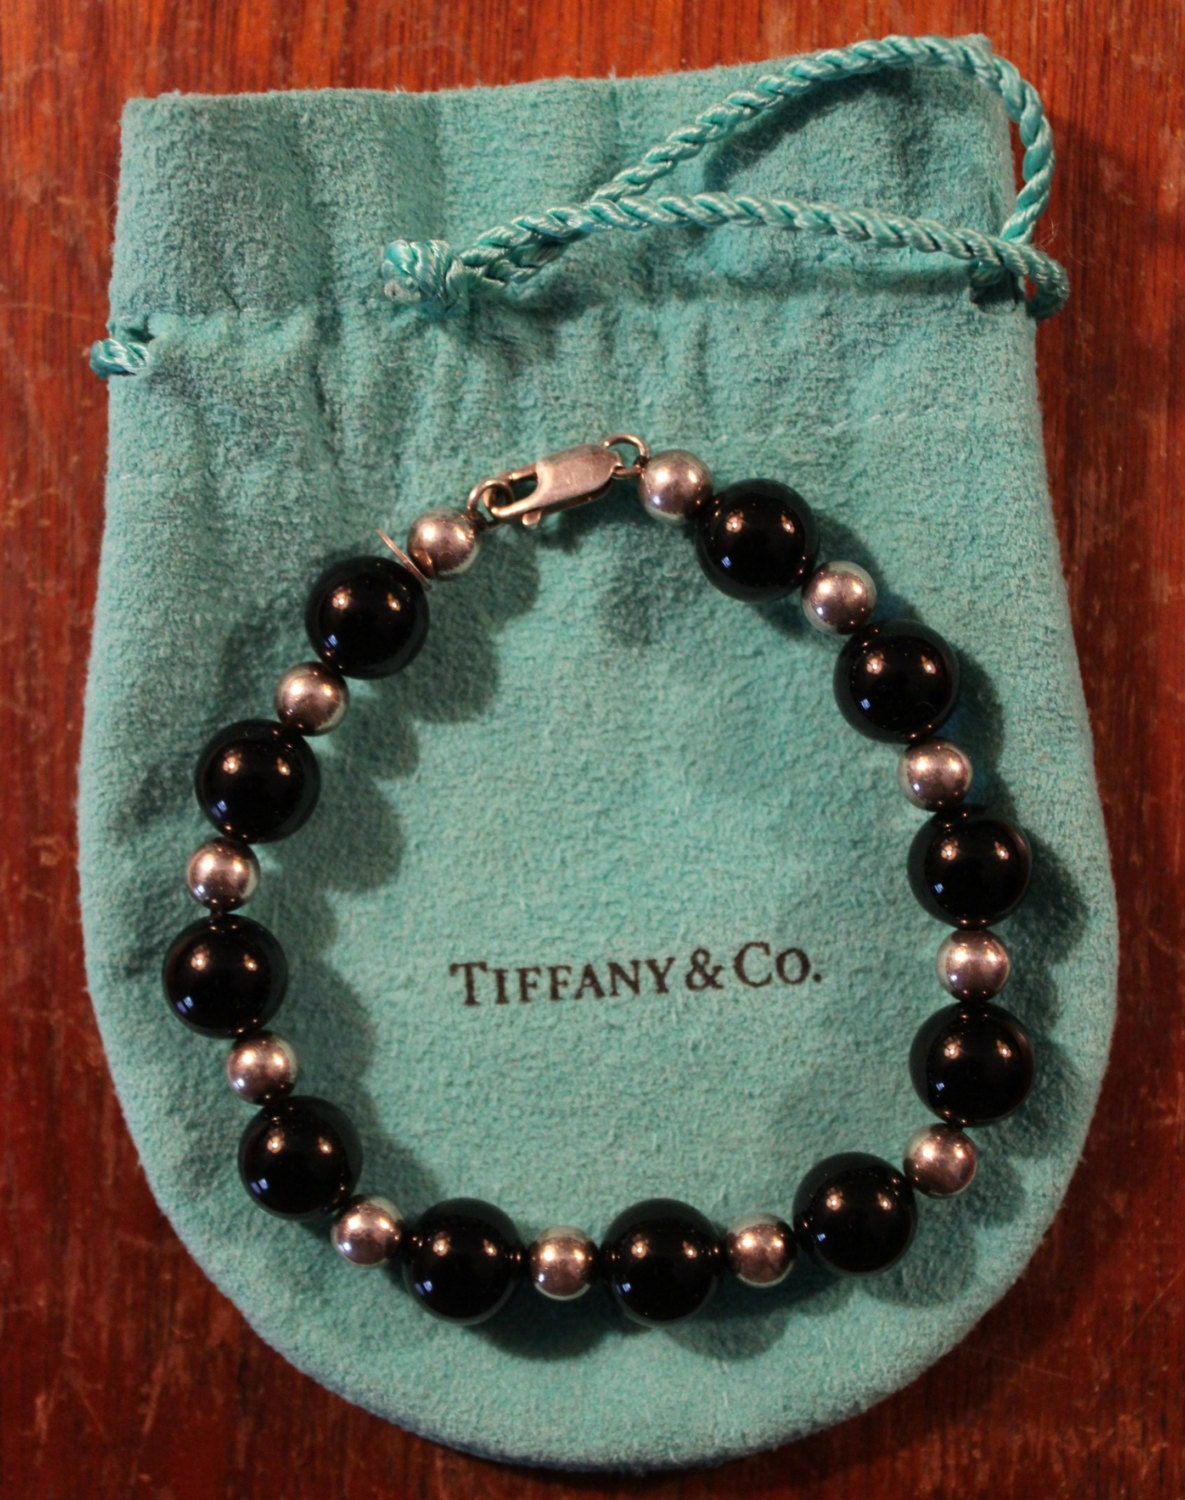 Vintage Tiffany Amp Co Black Onyx And Sterling Silver Bead